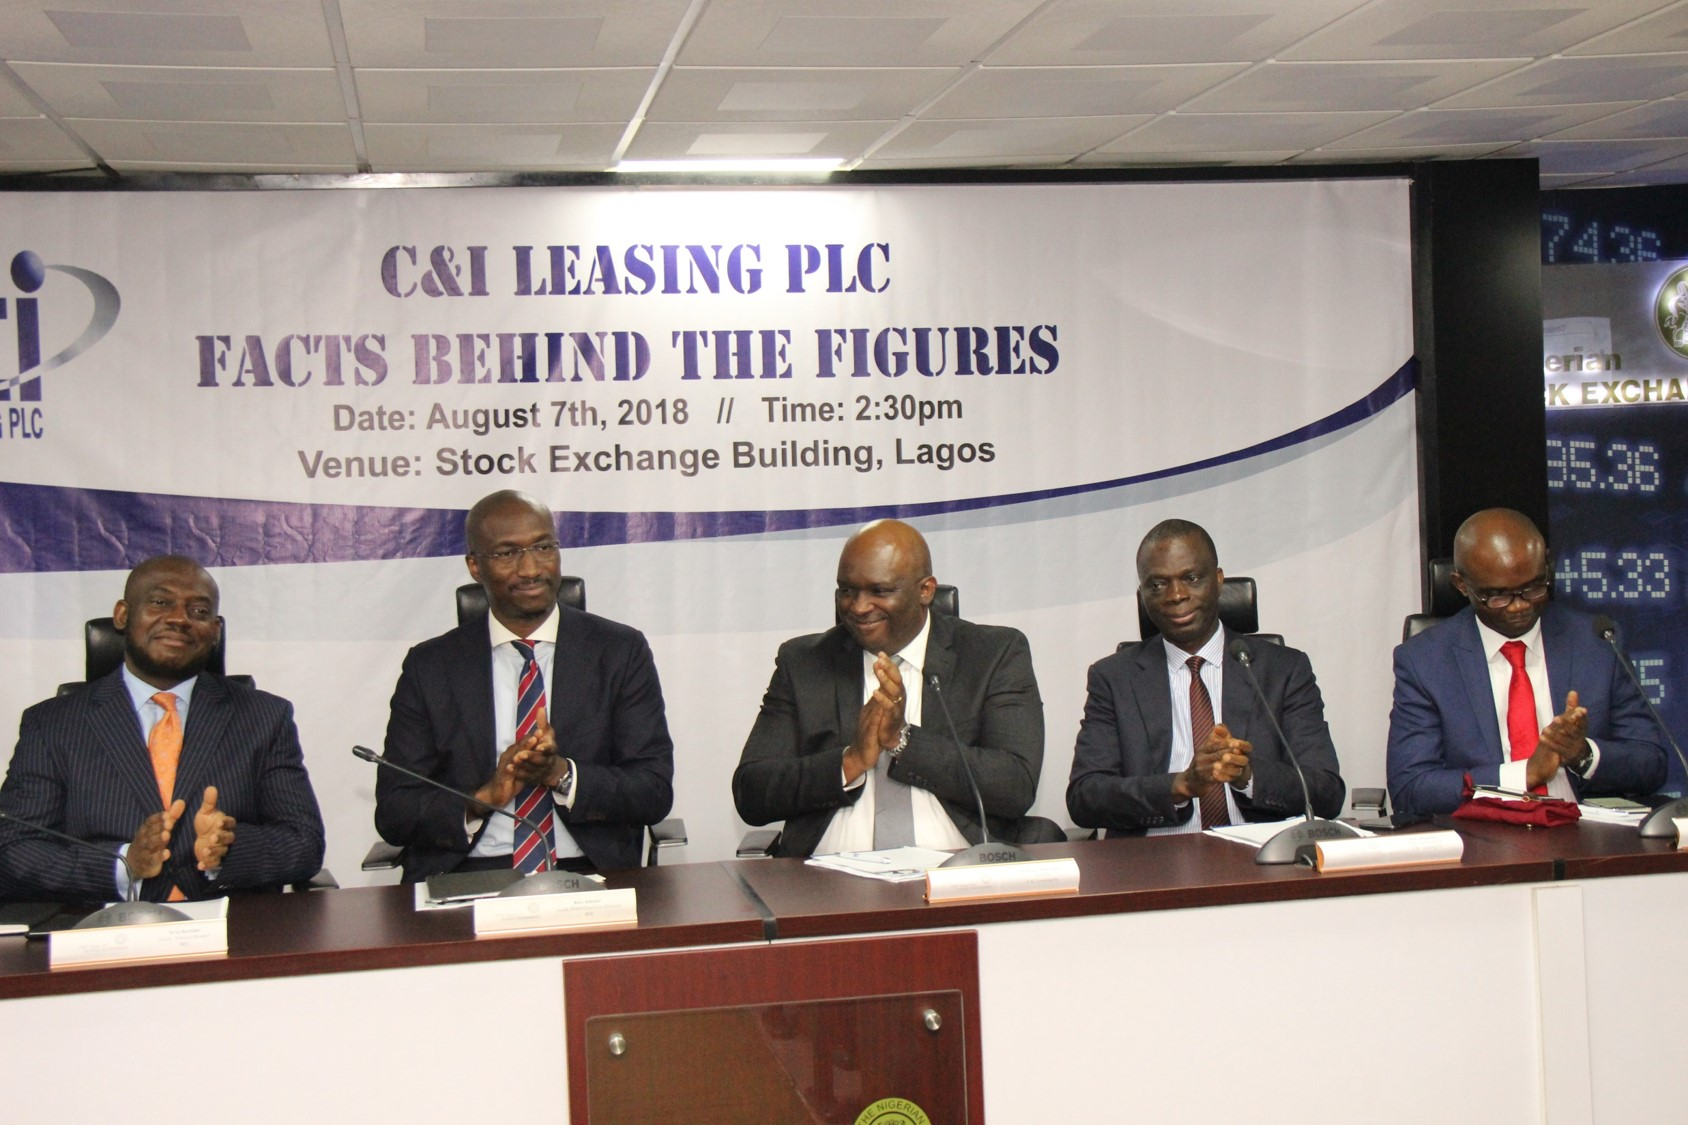 L – R shows Tony Ibeziako, Ag. Head, Listing Business Division, The Nigerian Stock Exchange (NSE); Bola Adeeko, Head, Shared Services Division, NSE; Andrew Otike-Odibi, Managing Director/CEO, C&I Leasing PLC; Alex Mbakogu, Executive Director /CFO, C&I Leasing PLC and Ikechukwu Duru, Director, C&I Leasing Plc during the Facts Behind the Figures presentation at the Exchange today